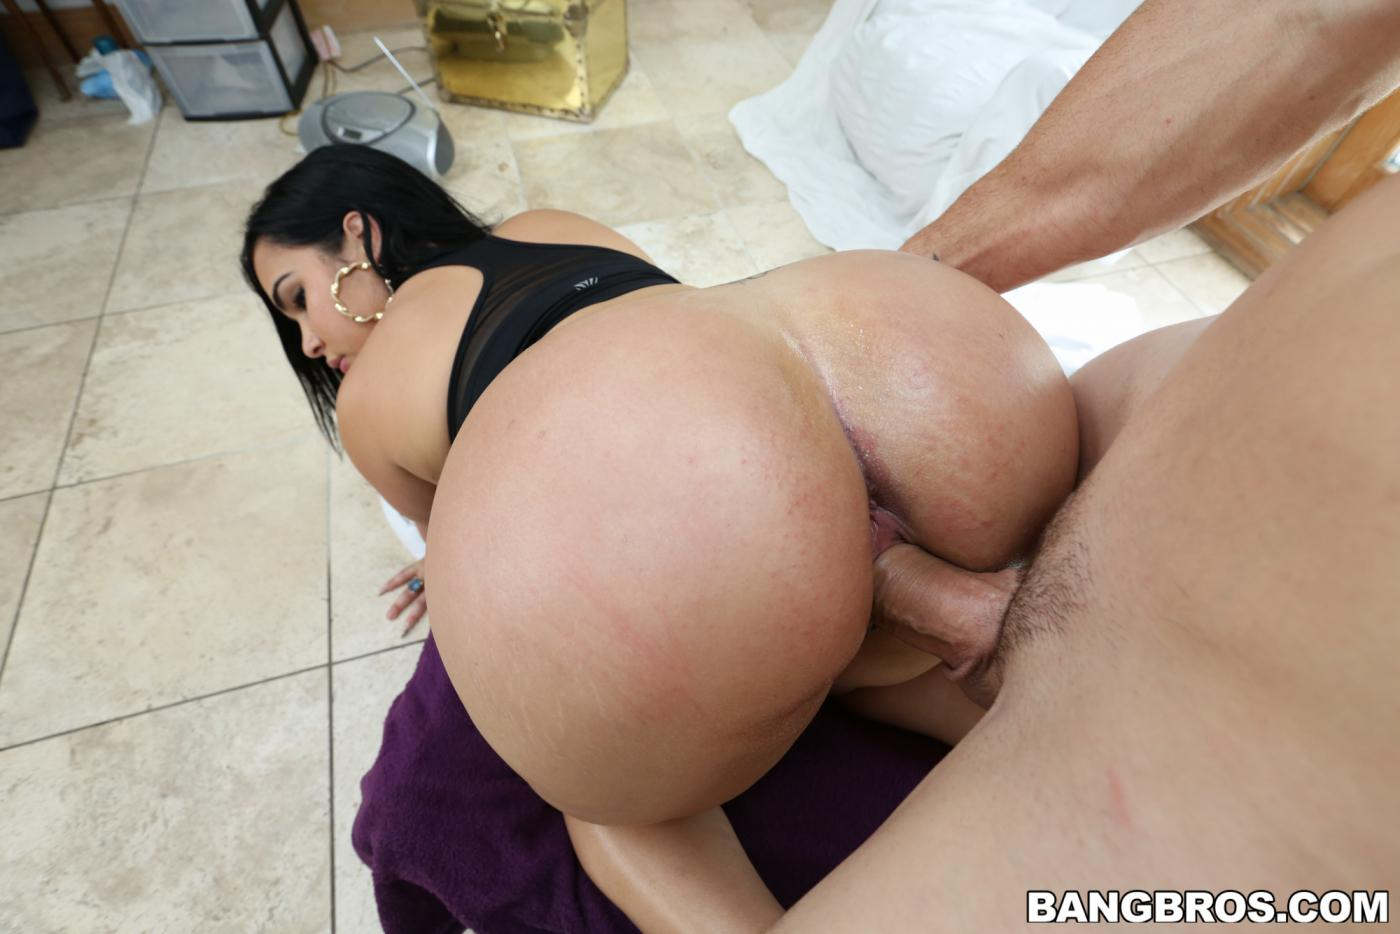 Ass Anal Movies sexy latina big ass anal - porno photo. comments: 1